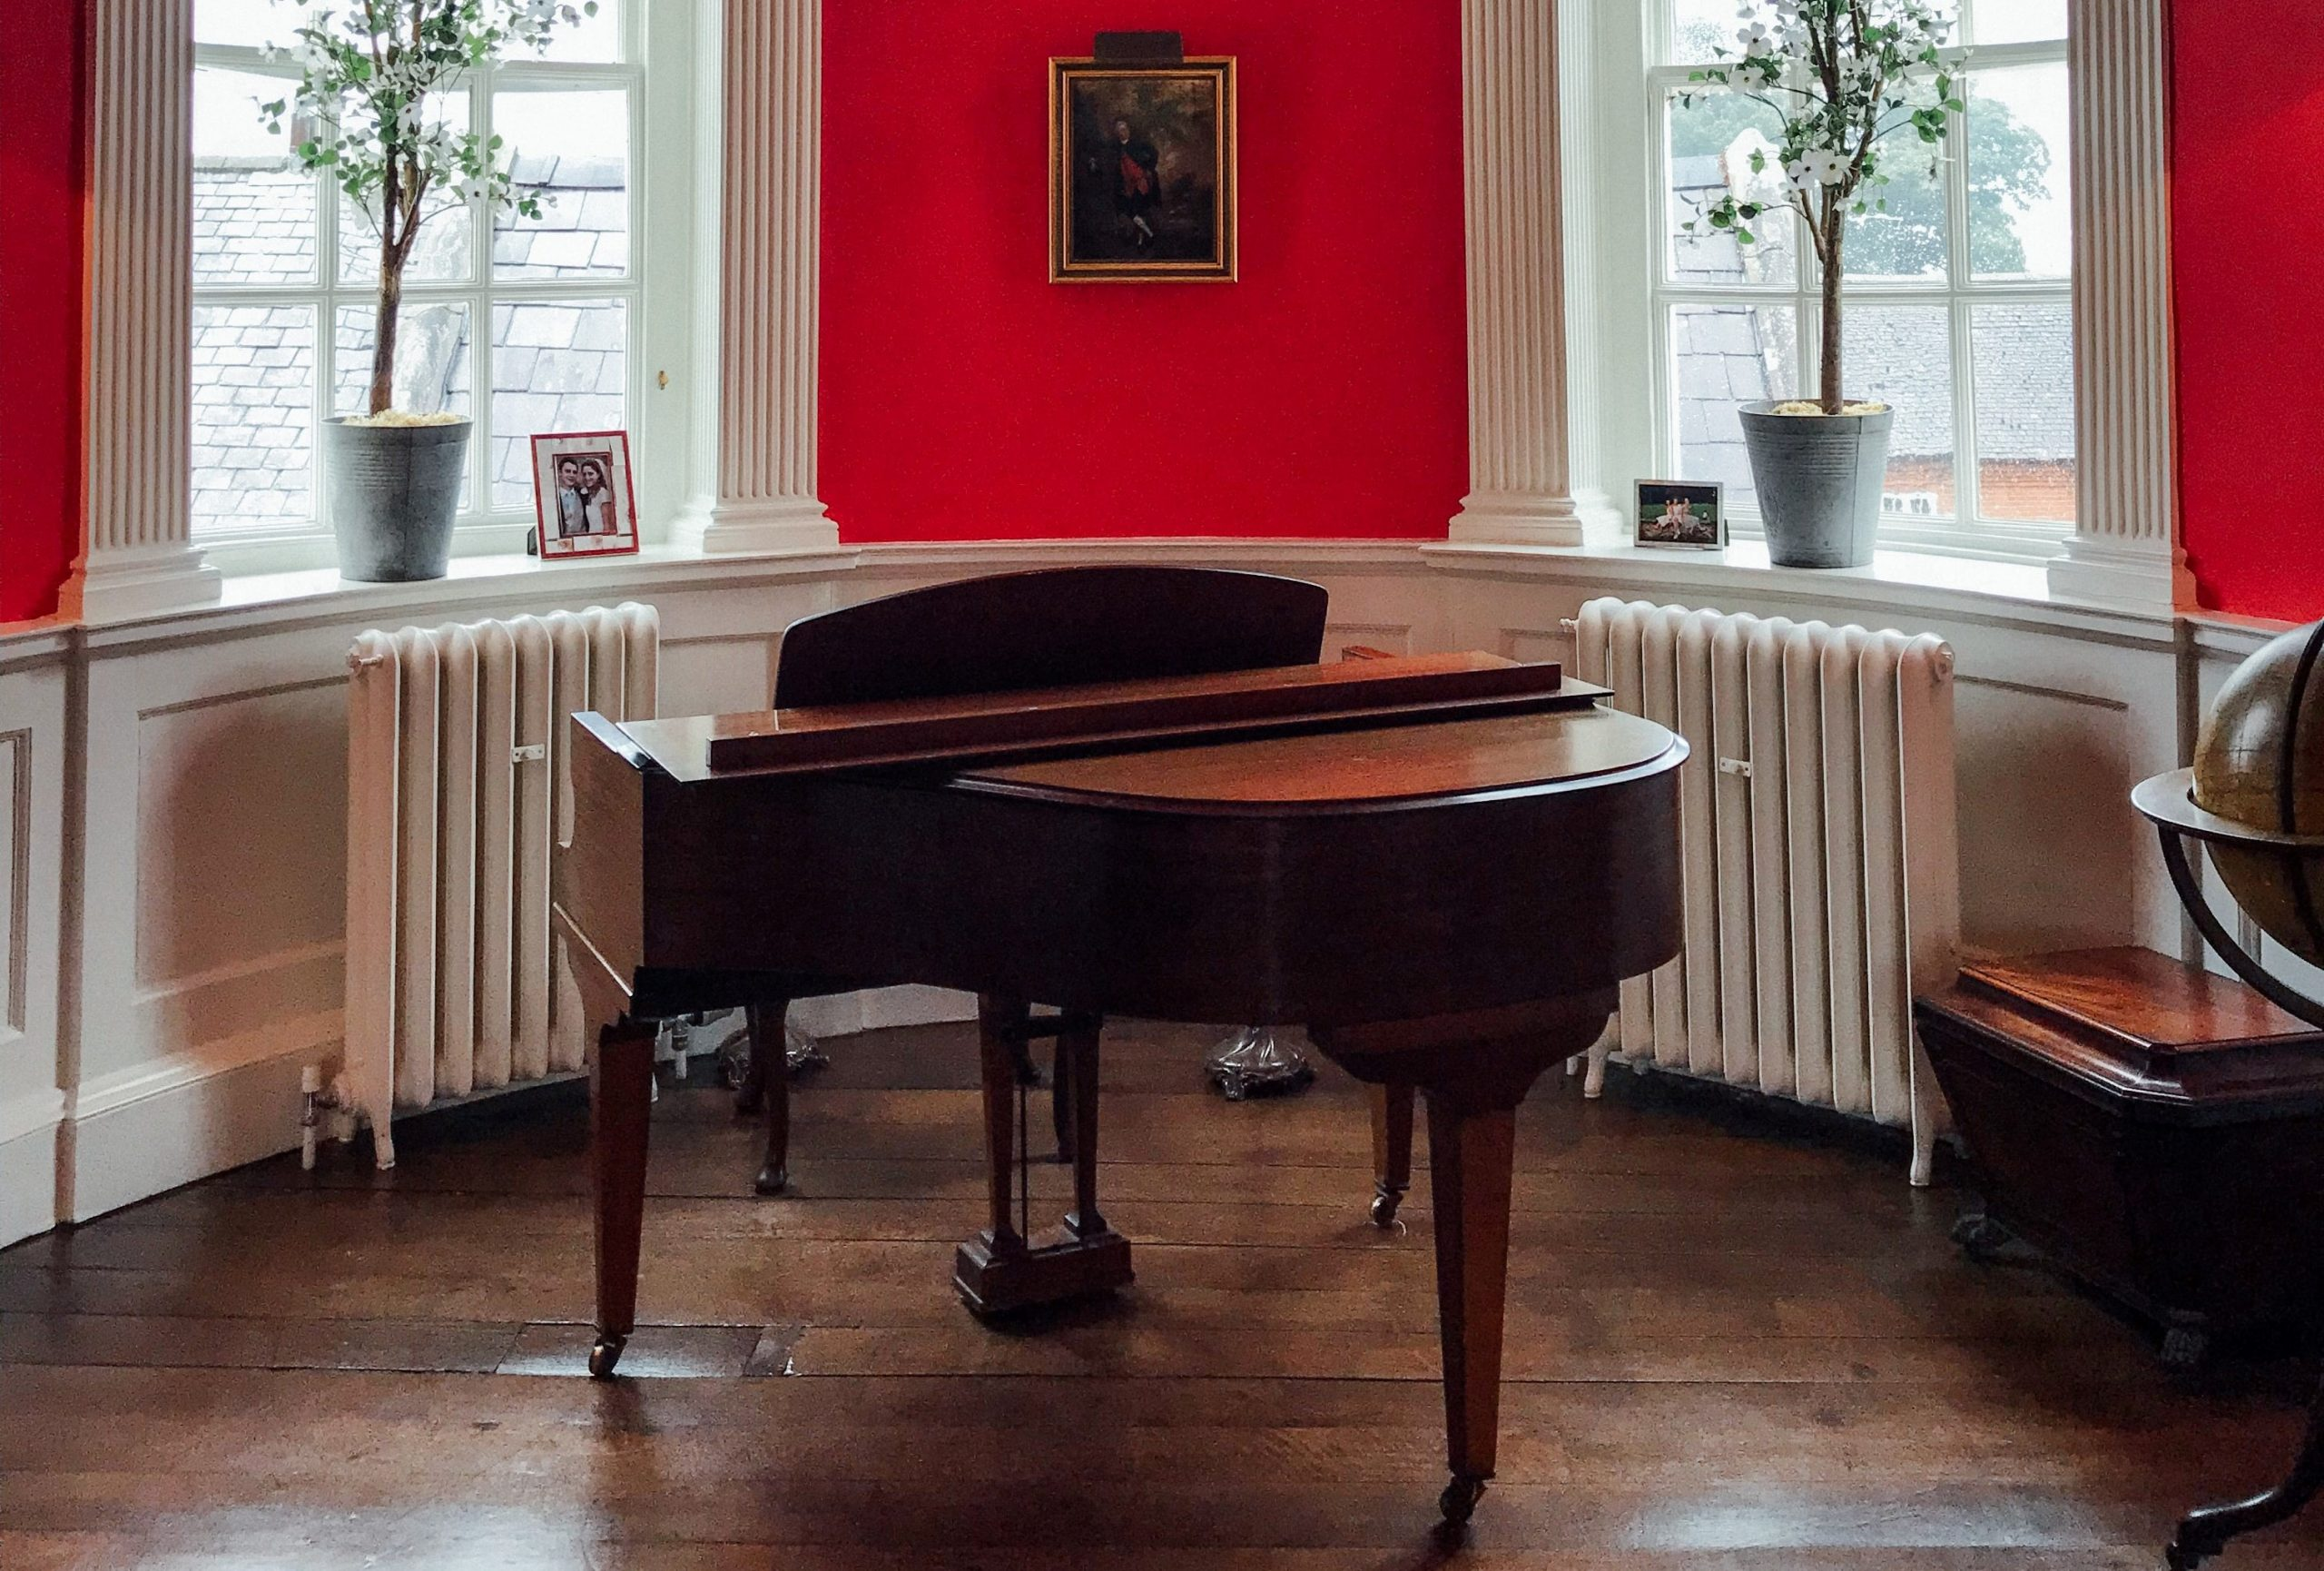 Discover the Romantic Period of Music History